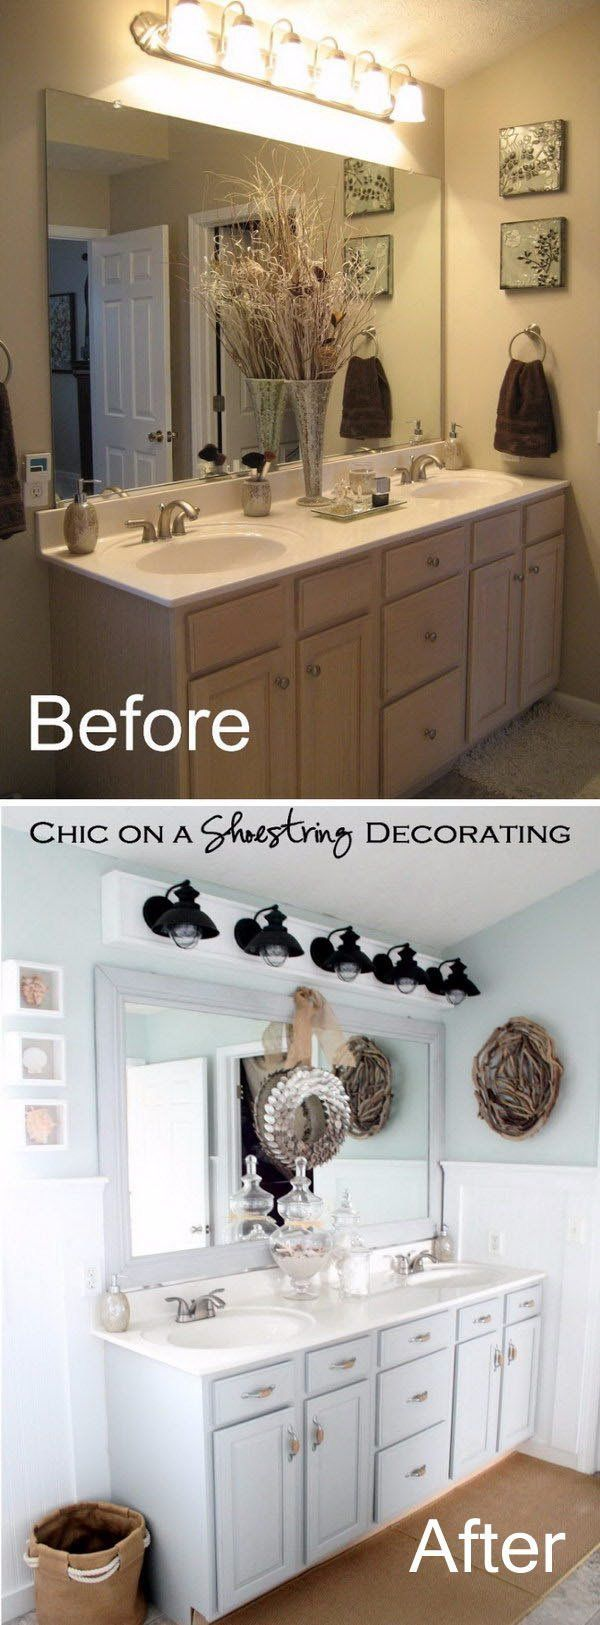 Beachy Bathroom Makeover. Bathroom Renovation. Looking for gorgeous faucets, vanities, sinks for your small bathroom see our selection at www.gorgeoustubs.com Bathroom, tiny bathroom, small bathroom, before and after.